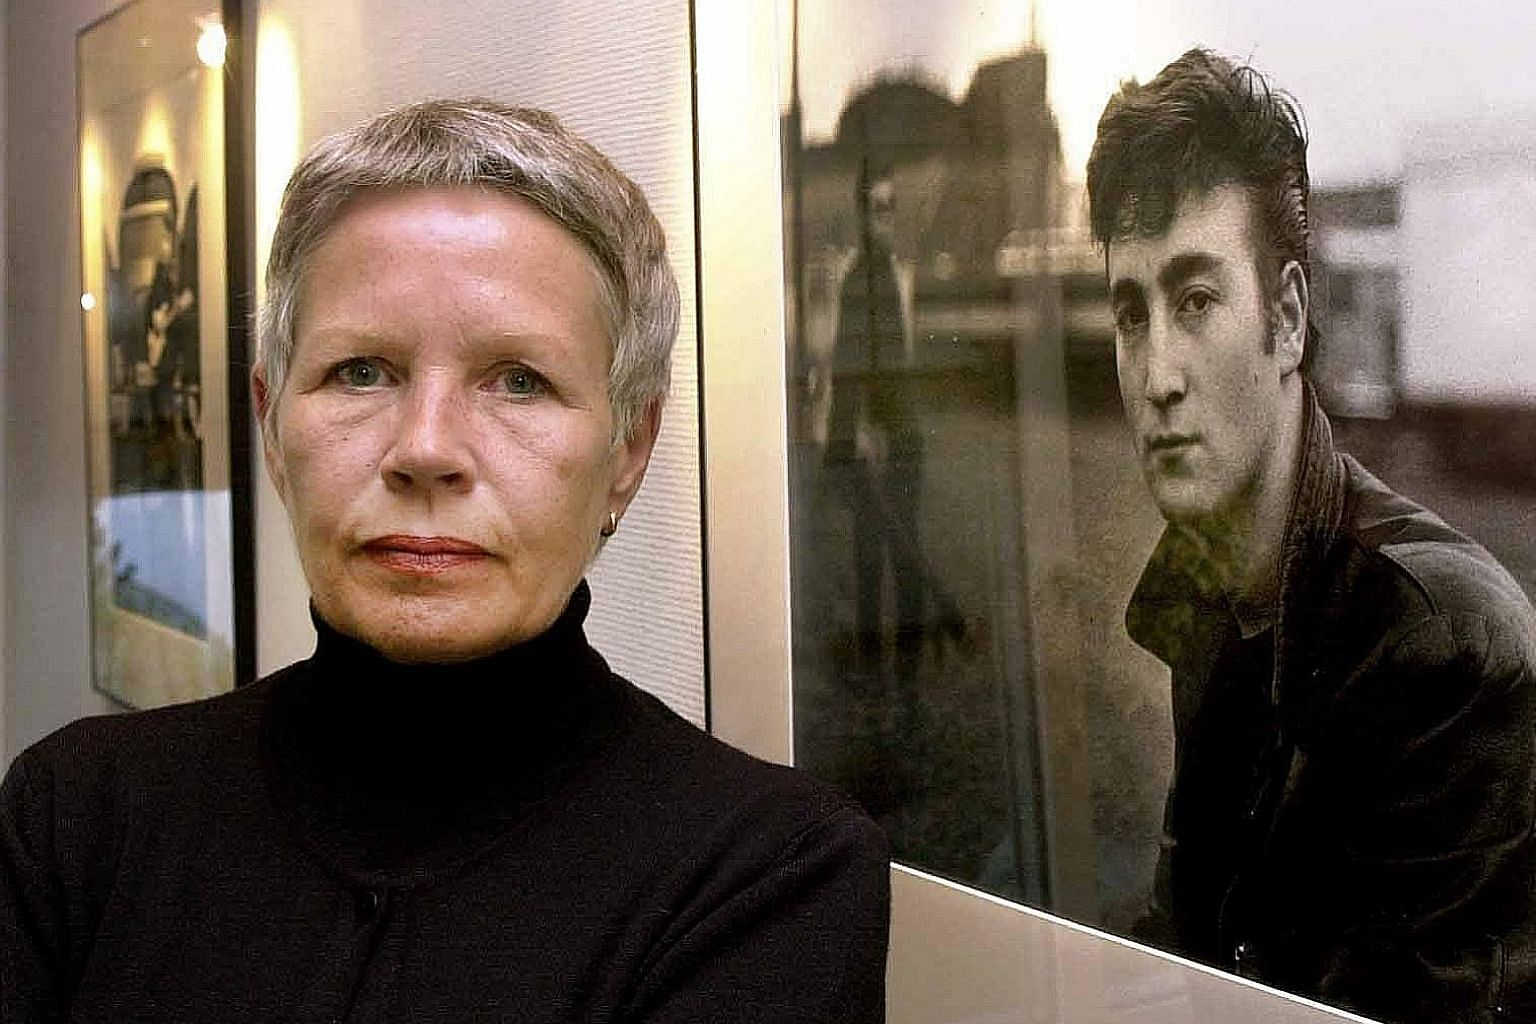 German photographer Astrid Kirchherr (in a 2000 file photo, in Itzehoe, Germany) in front of one of her photos featuring former Beatle John Lennon.